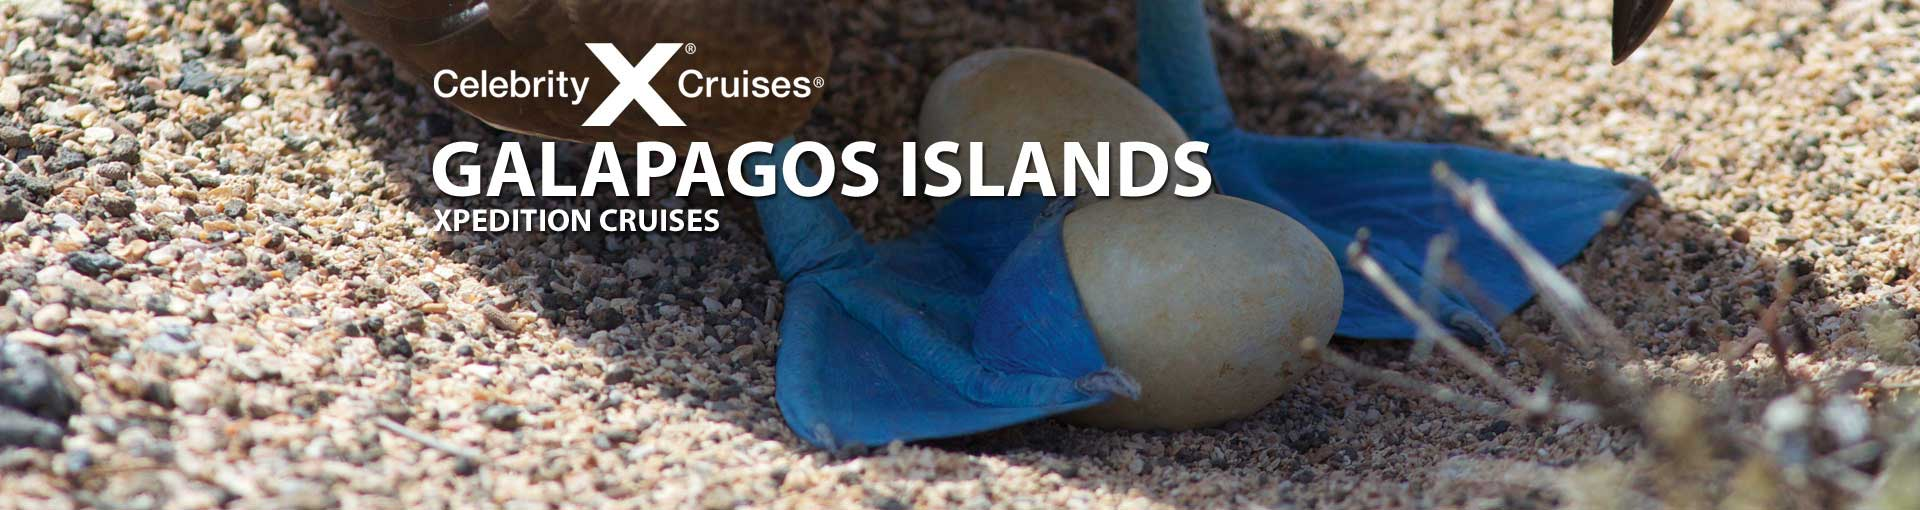 Celebrity cruises to the galapagos islands